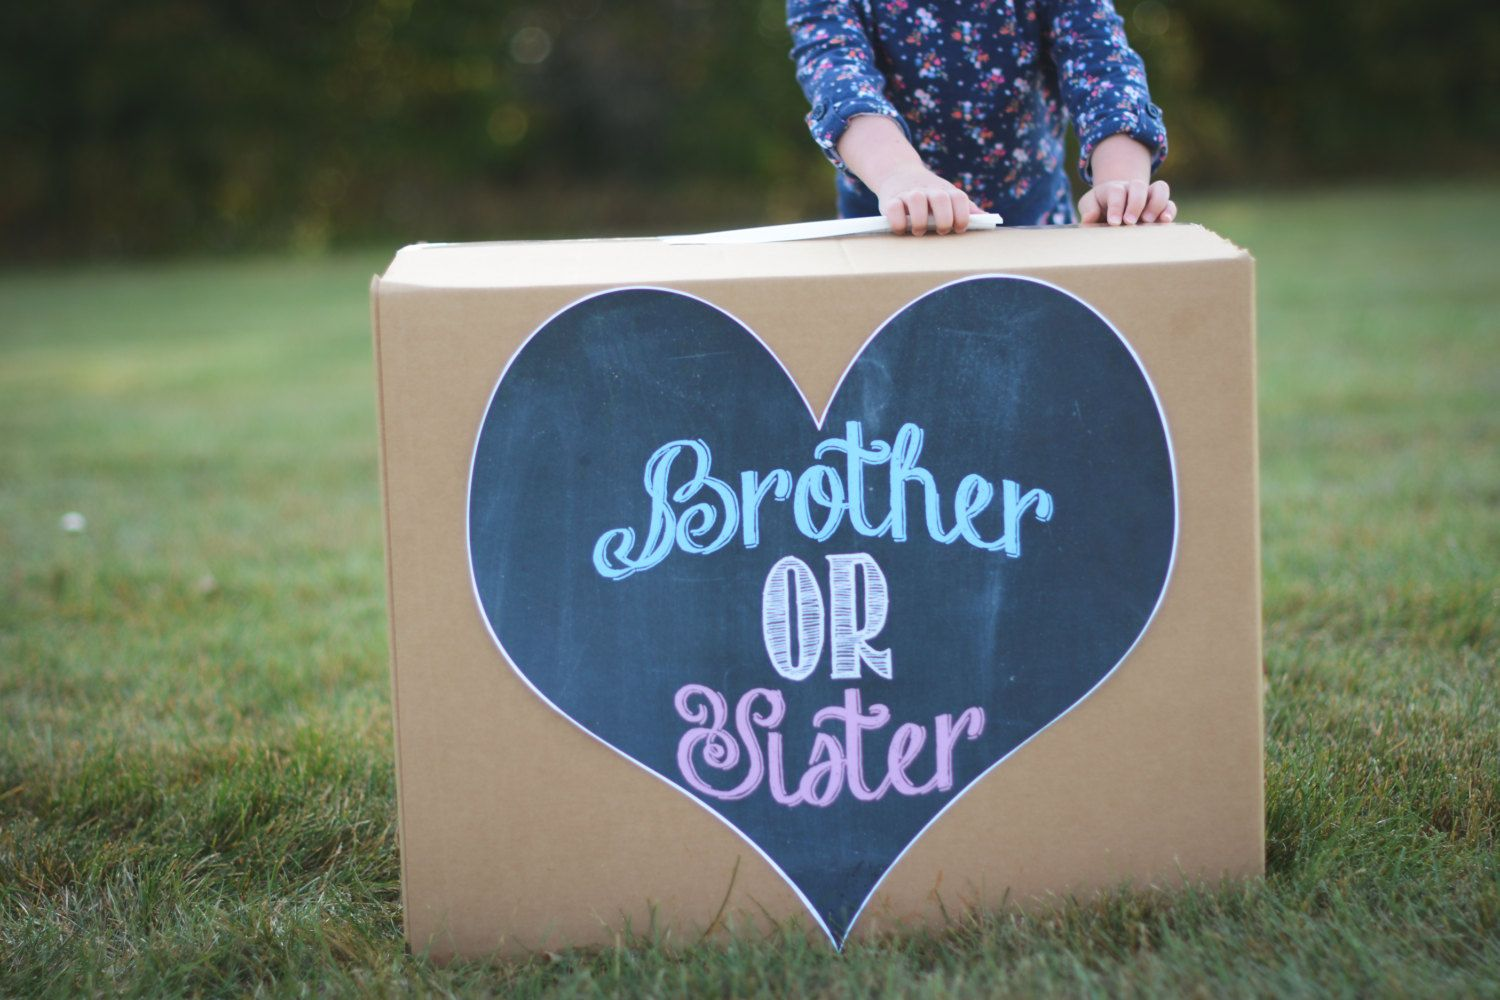 Brother Or Sister Gender Sibling Reveal Balloon Box Sign Etsy Gender Reveal Announcement Gender Reveal Balloon Box Gender Reveal Signs